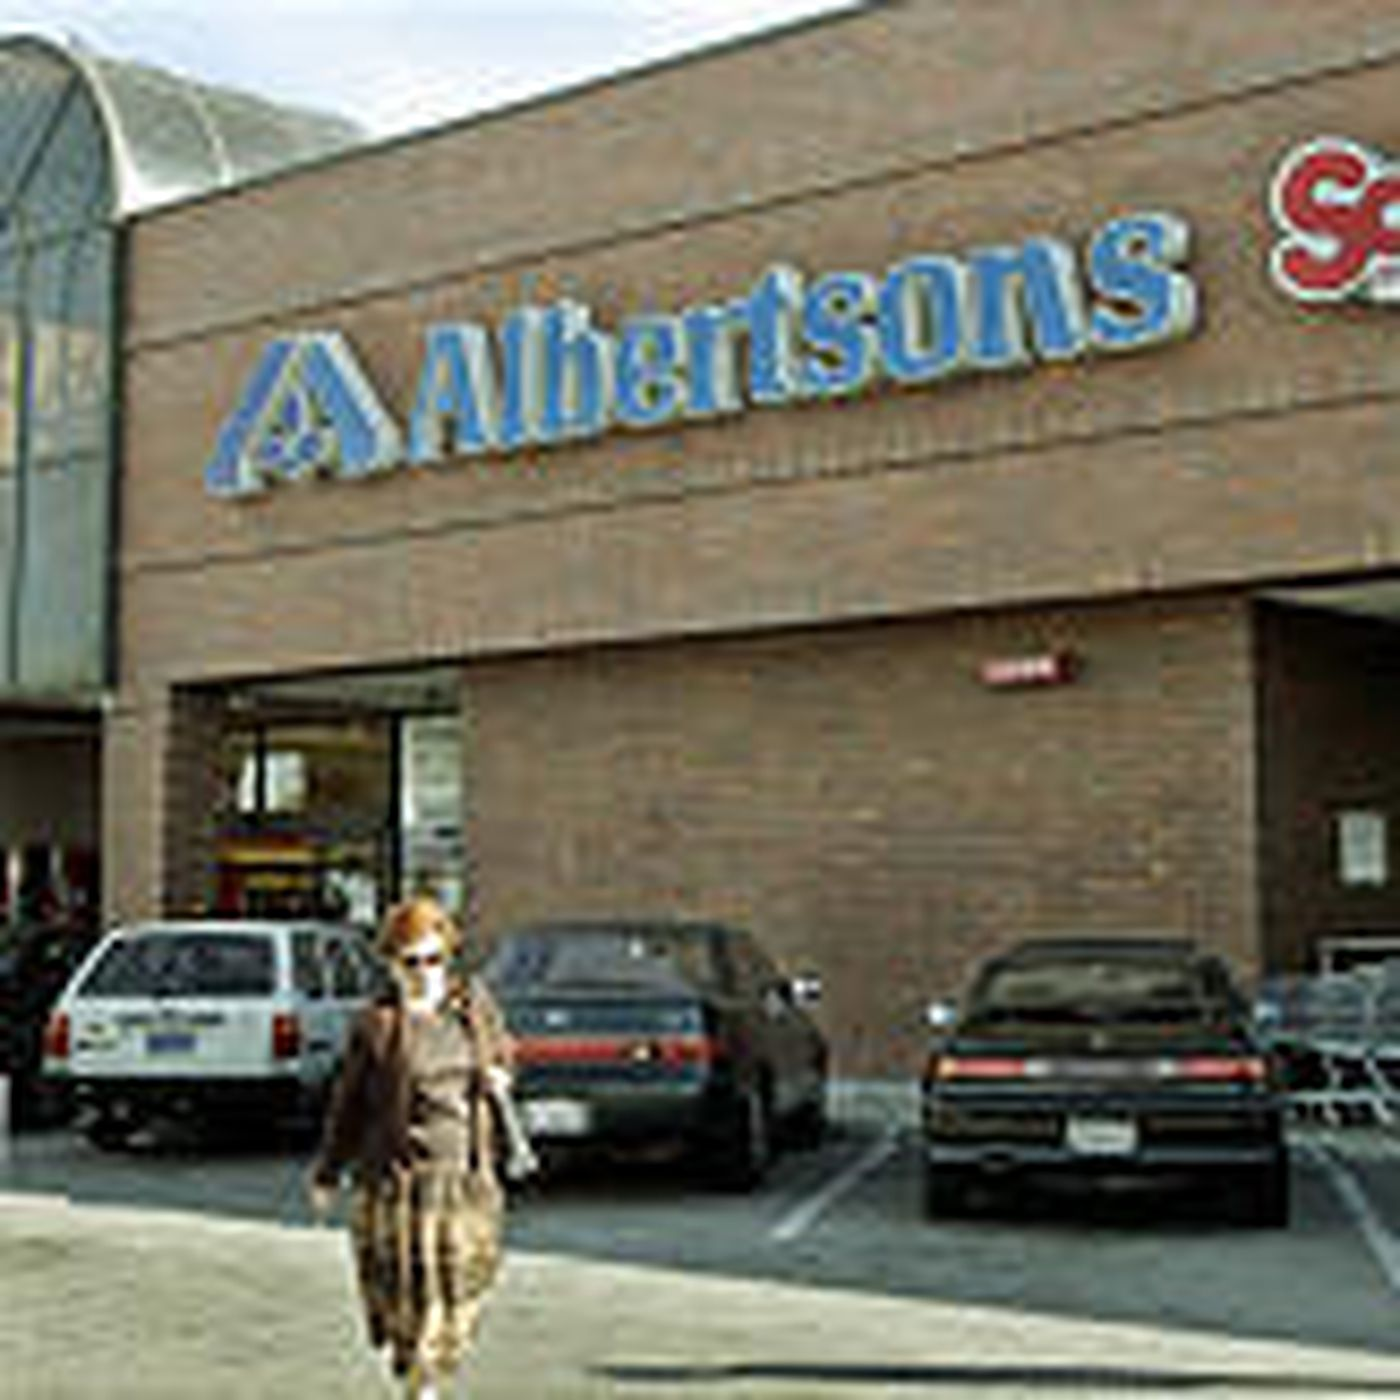 Albertsons to lay offup to 2,500 - Deseret News